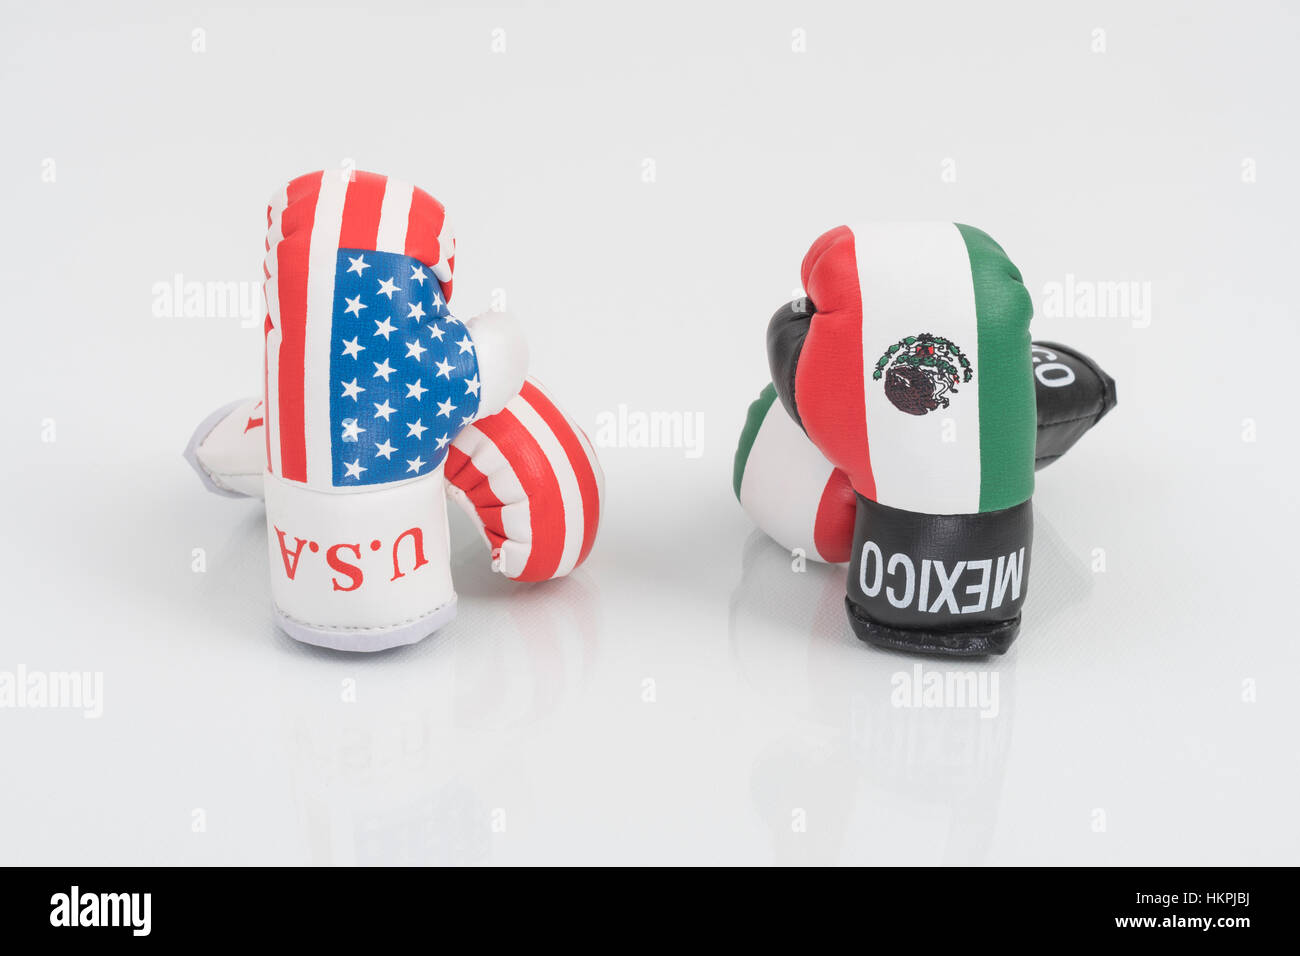 America-Mexico stand-off (Donald Trump) represented by USA and Mexican emblem boxing gloves. NAFTA breakdown concept. - Stock Image